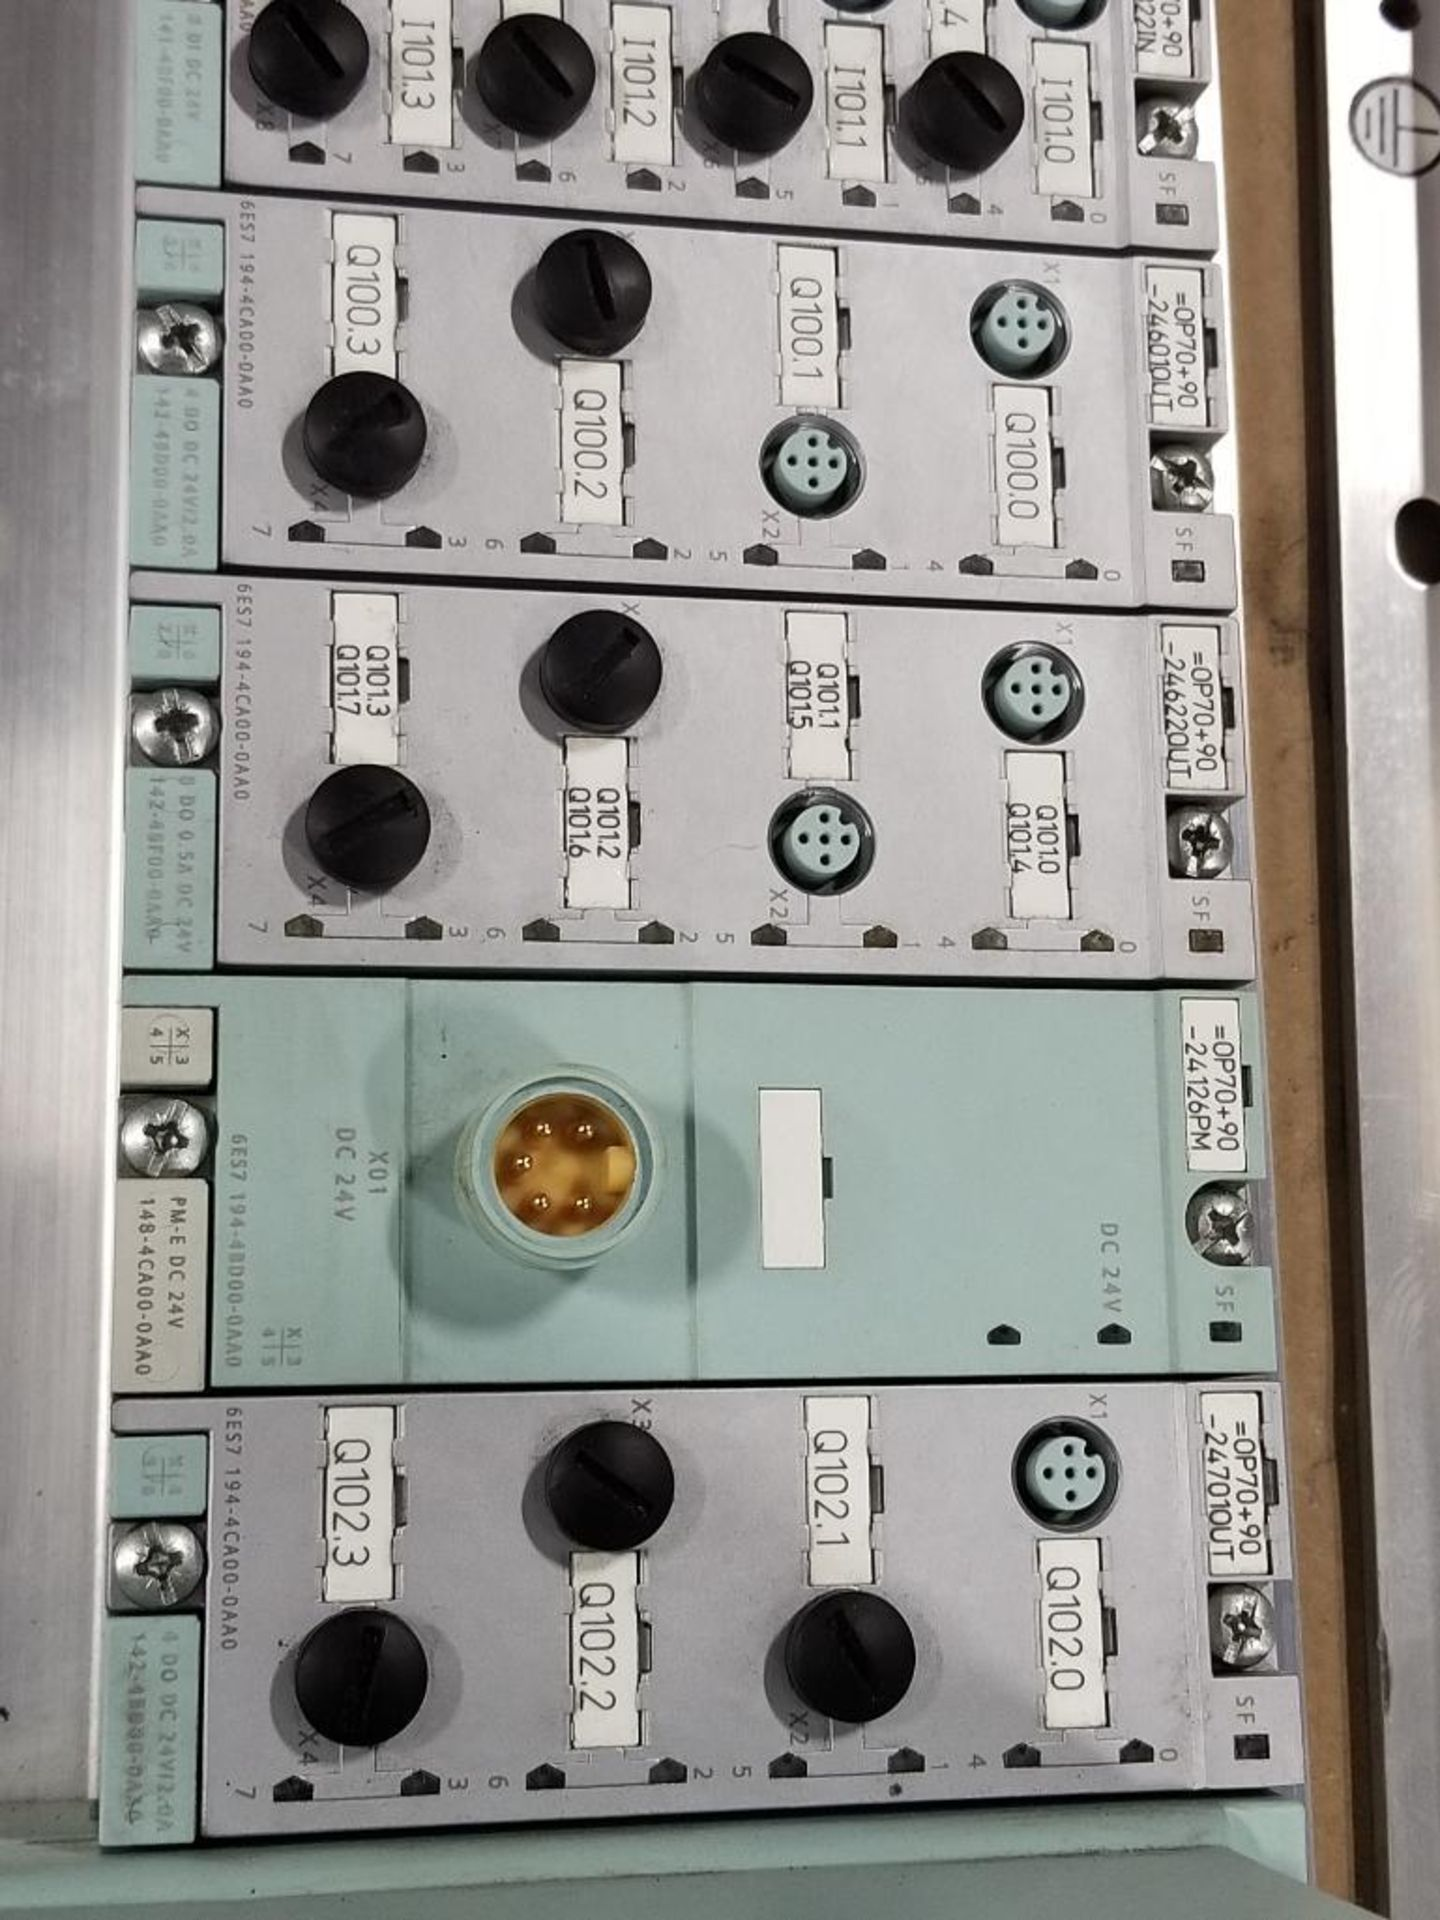 Siemens DSe-ST 3RK1304-5KS40-4AA0 disconnect module with flow control line. - Image 3 of 5